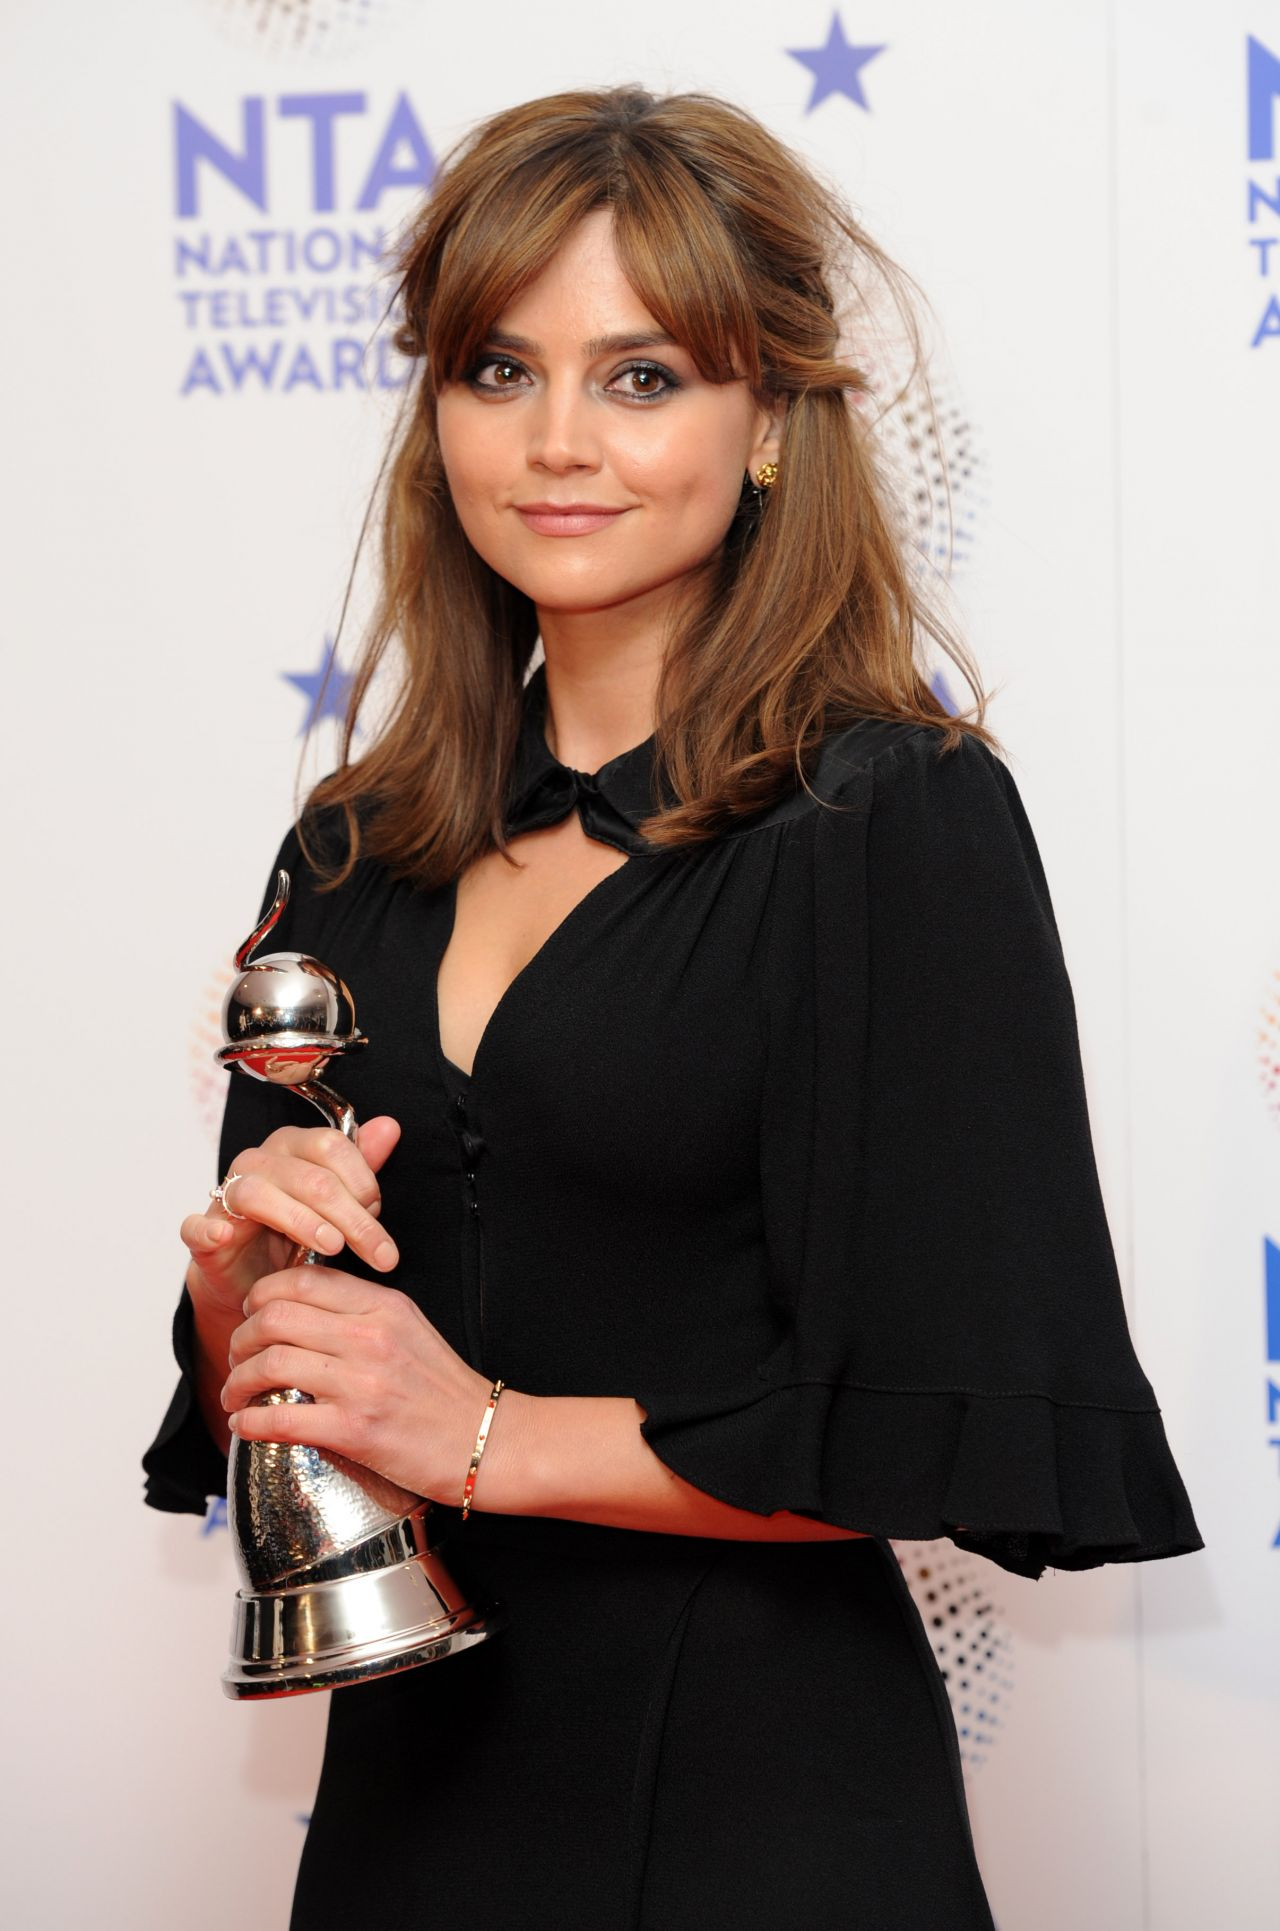 Jenna Louise Coleman at National Television Awards 2014